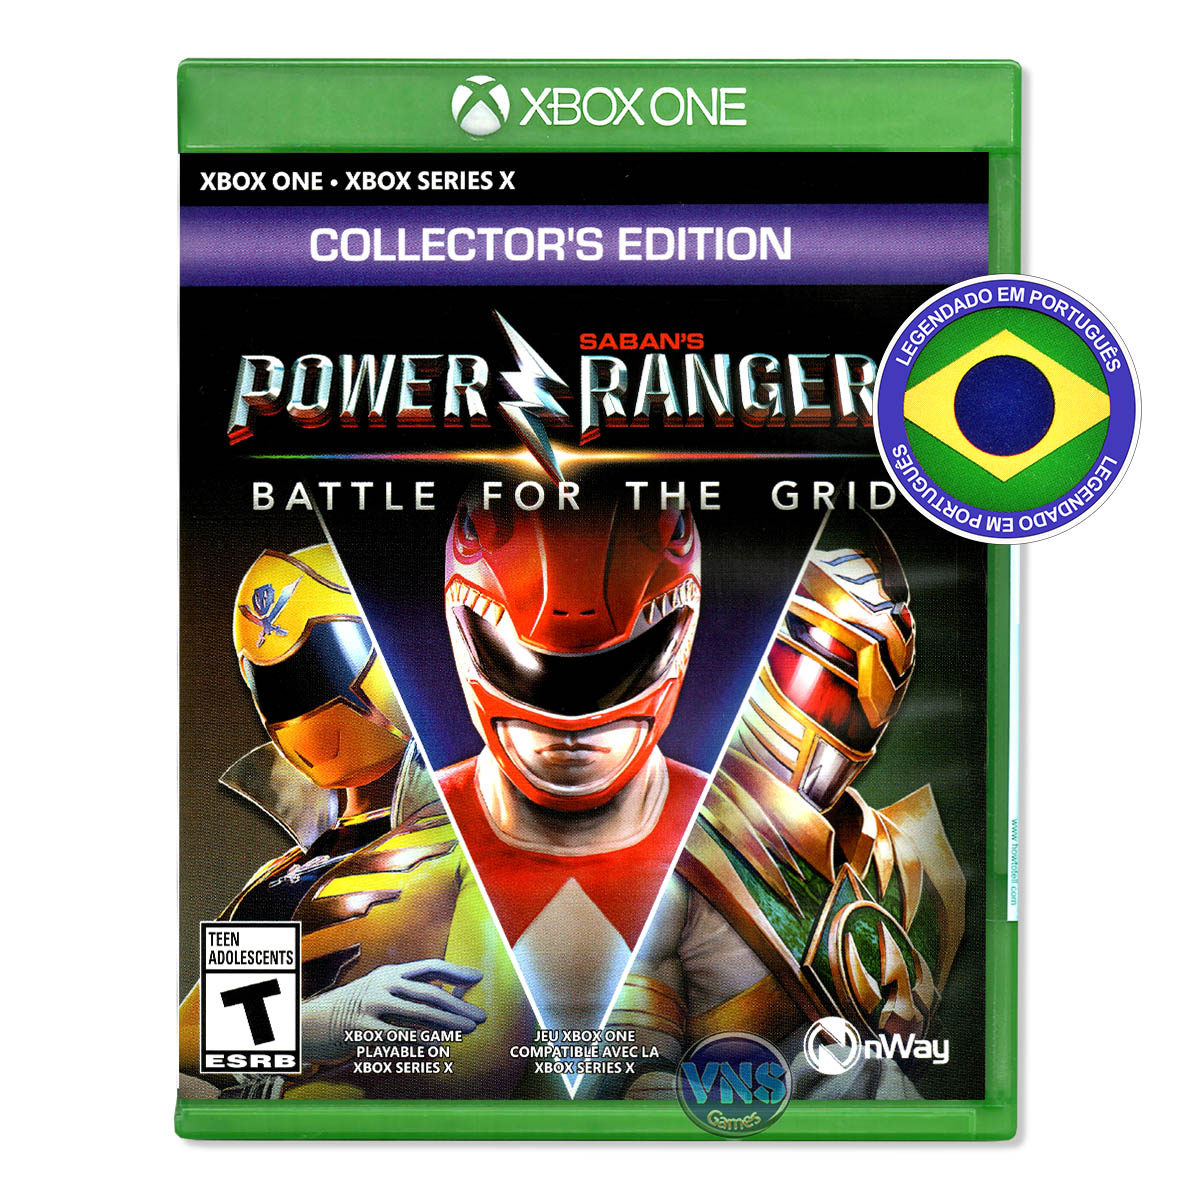 Power Rangers: Battle for the Grid - Collector's Edition - Xbox One